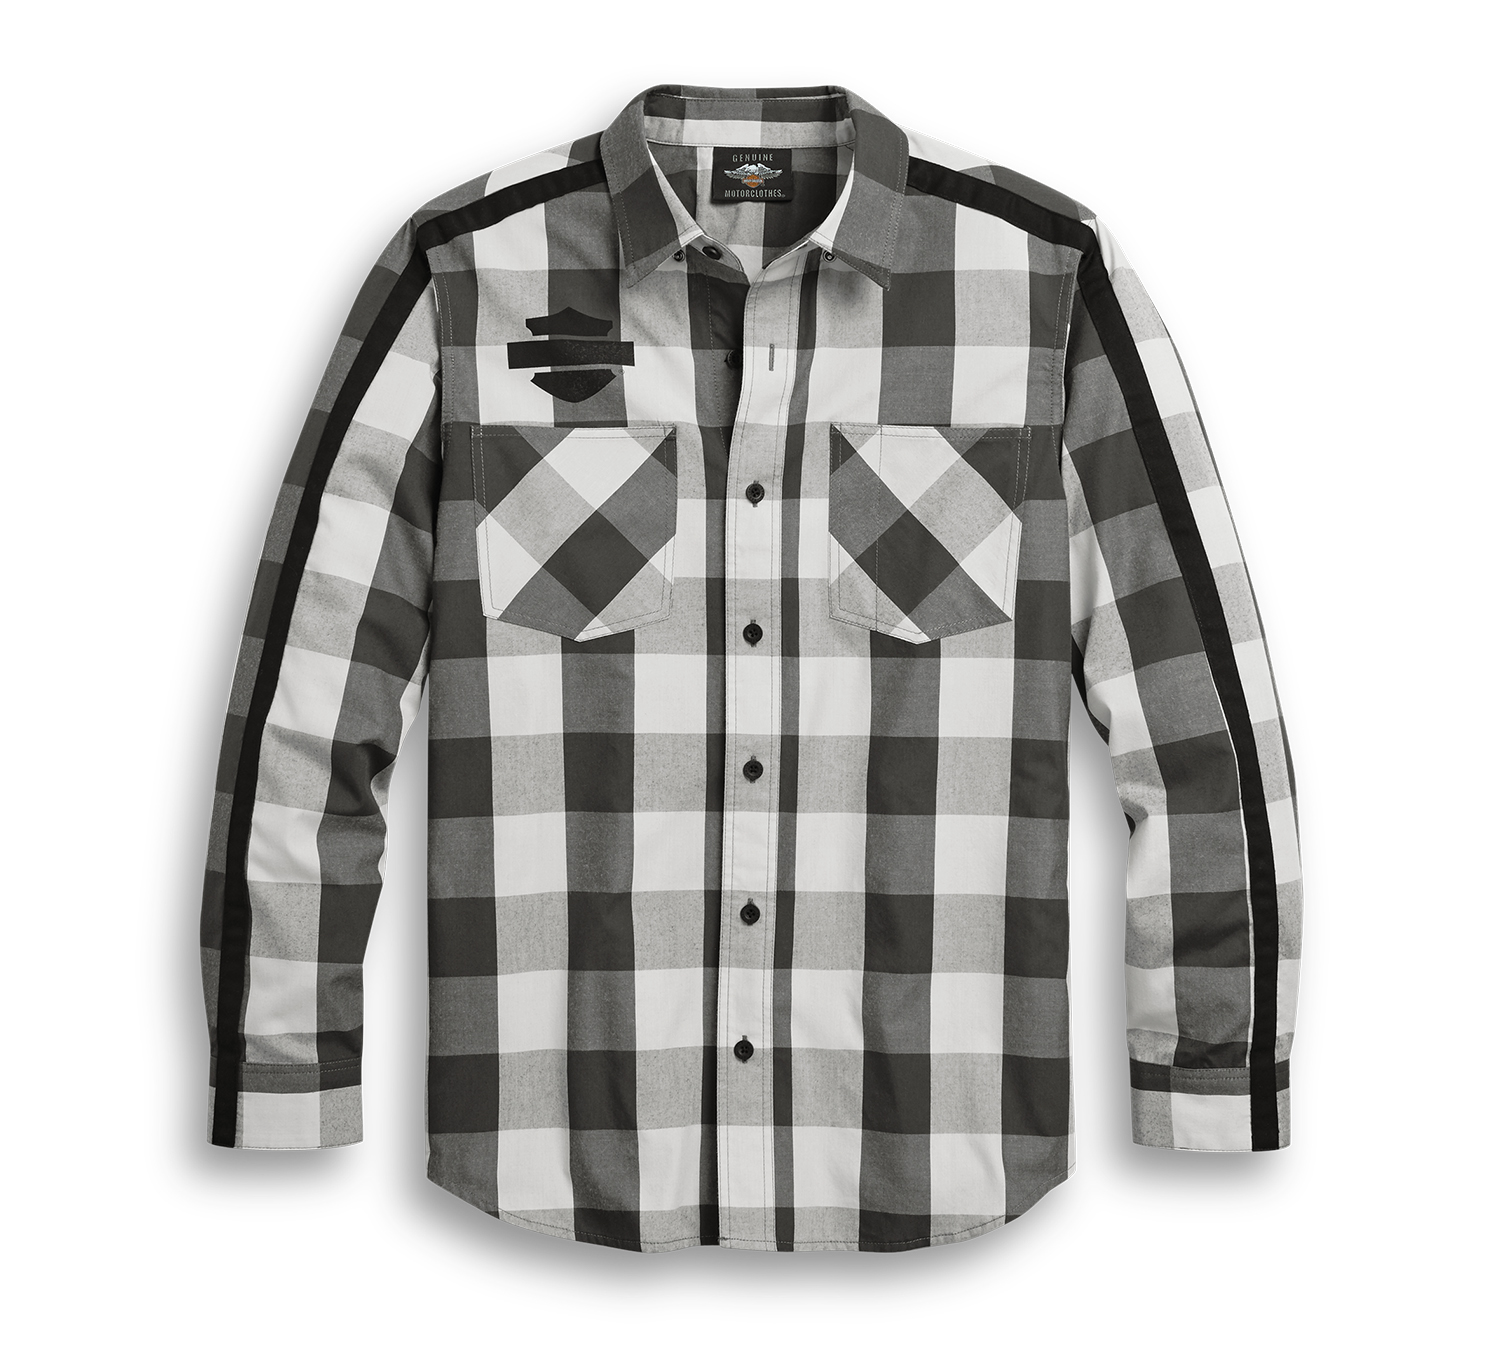 Harley-Davidson Men's Sleeve Stripe Plaid Shirt